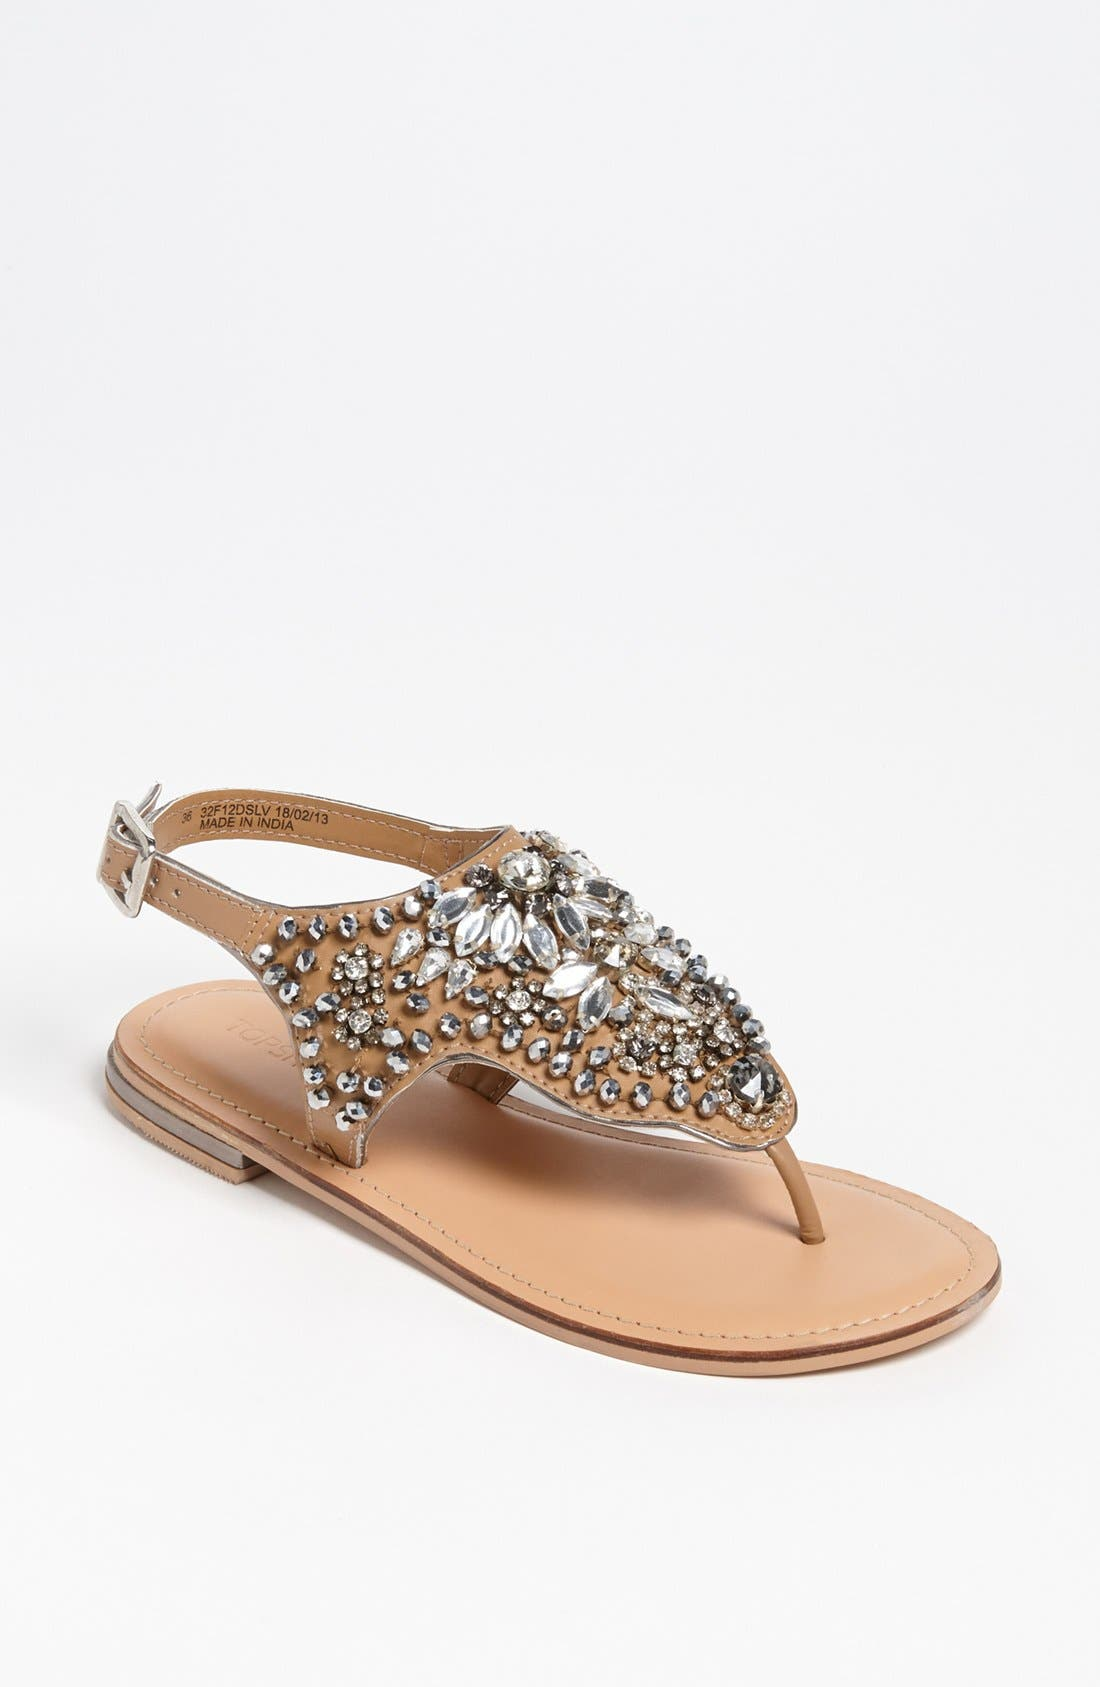 Alternate Image 1 Selected - Topshop 'Fliss' Sandal